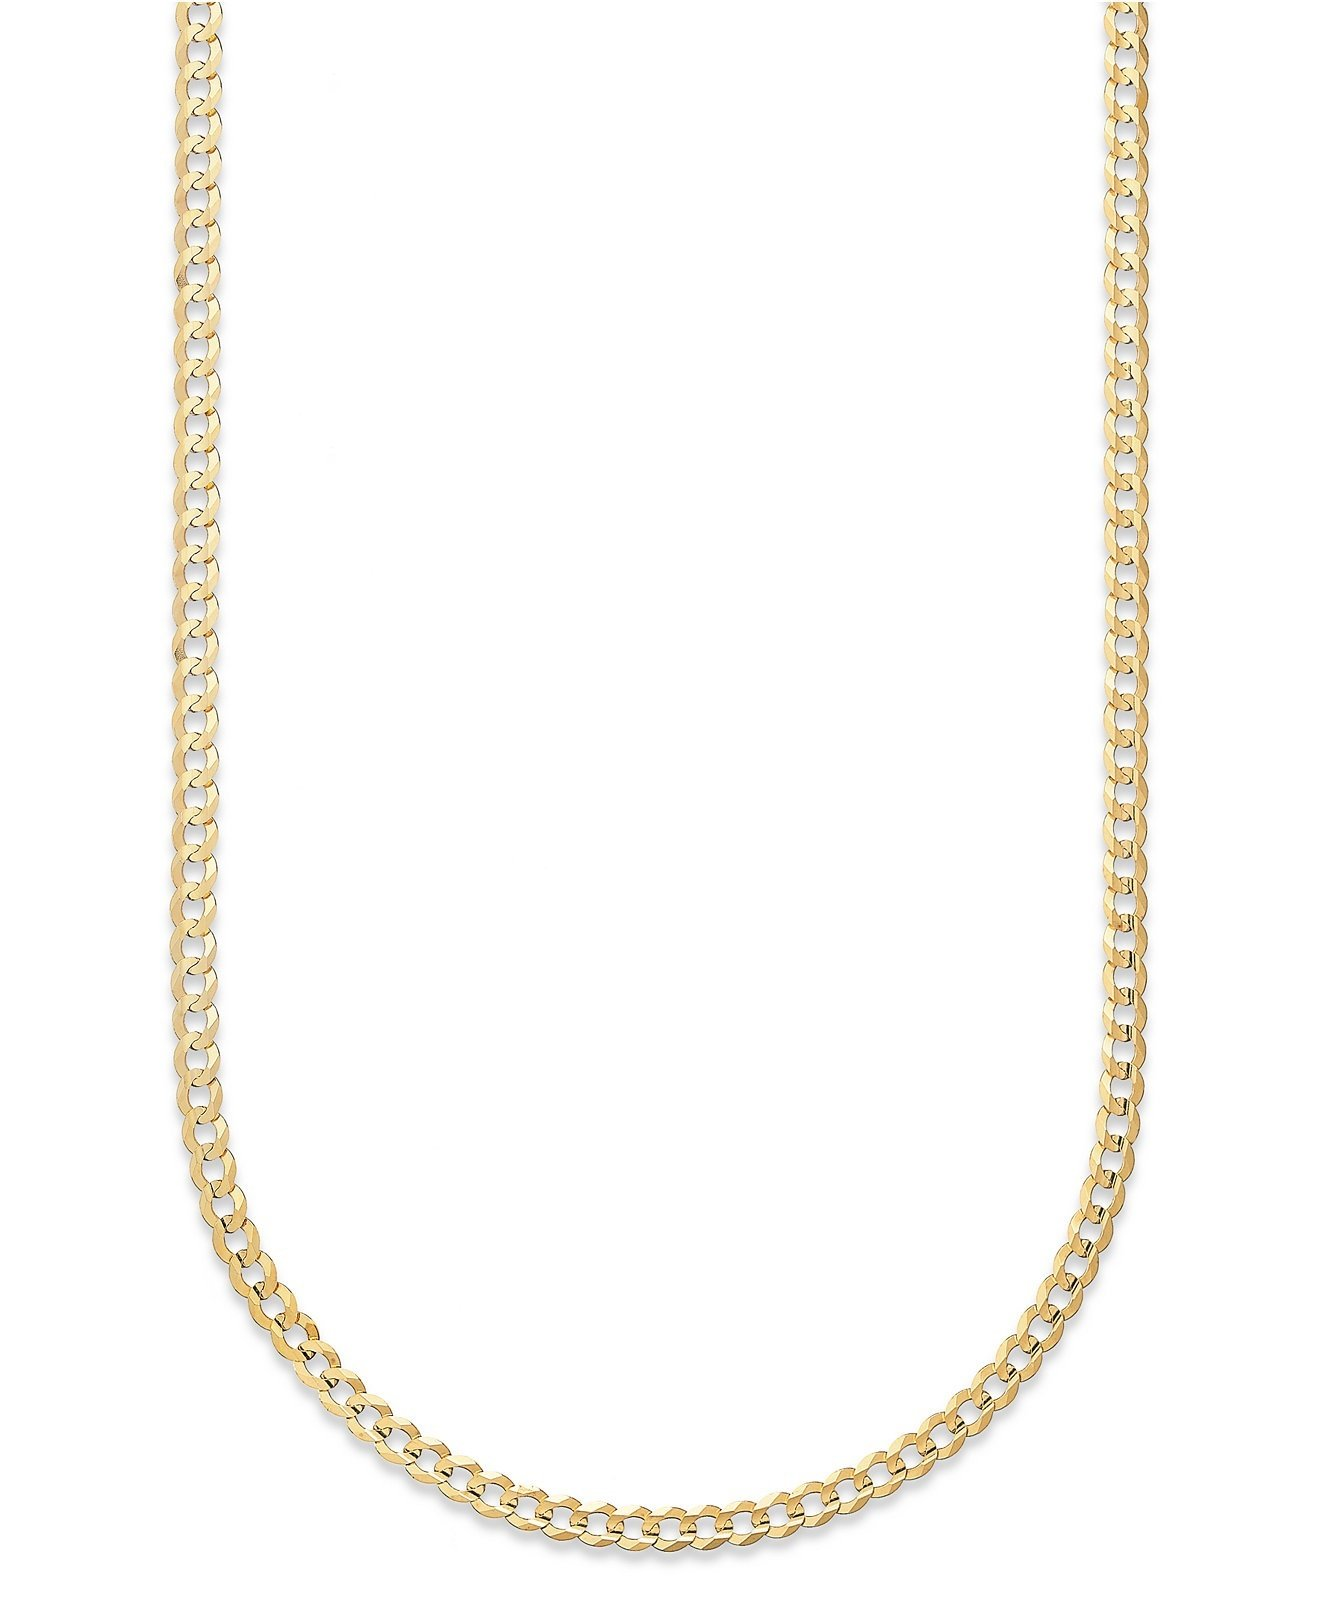 18 Karat Solid Yellow Gold 2mm Cuban Link Curb Chain Necklace- 18K Solid Gold- Made in Italy (30.0)